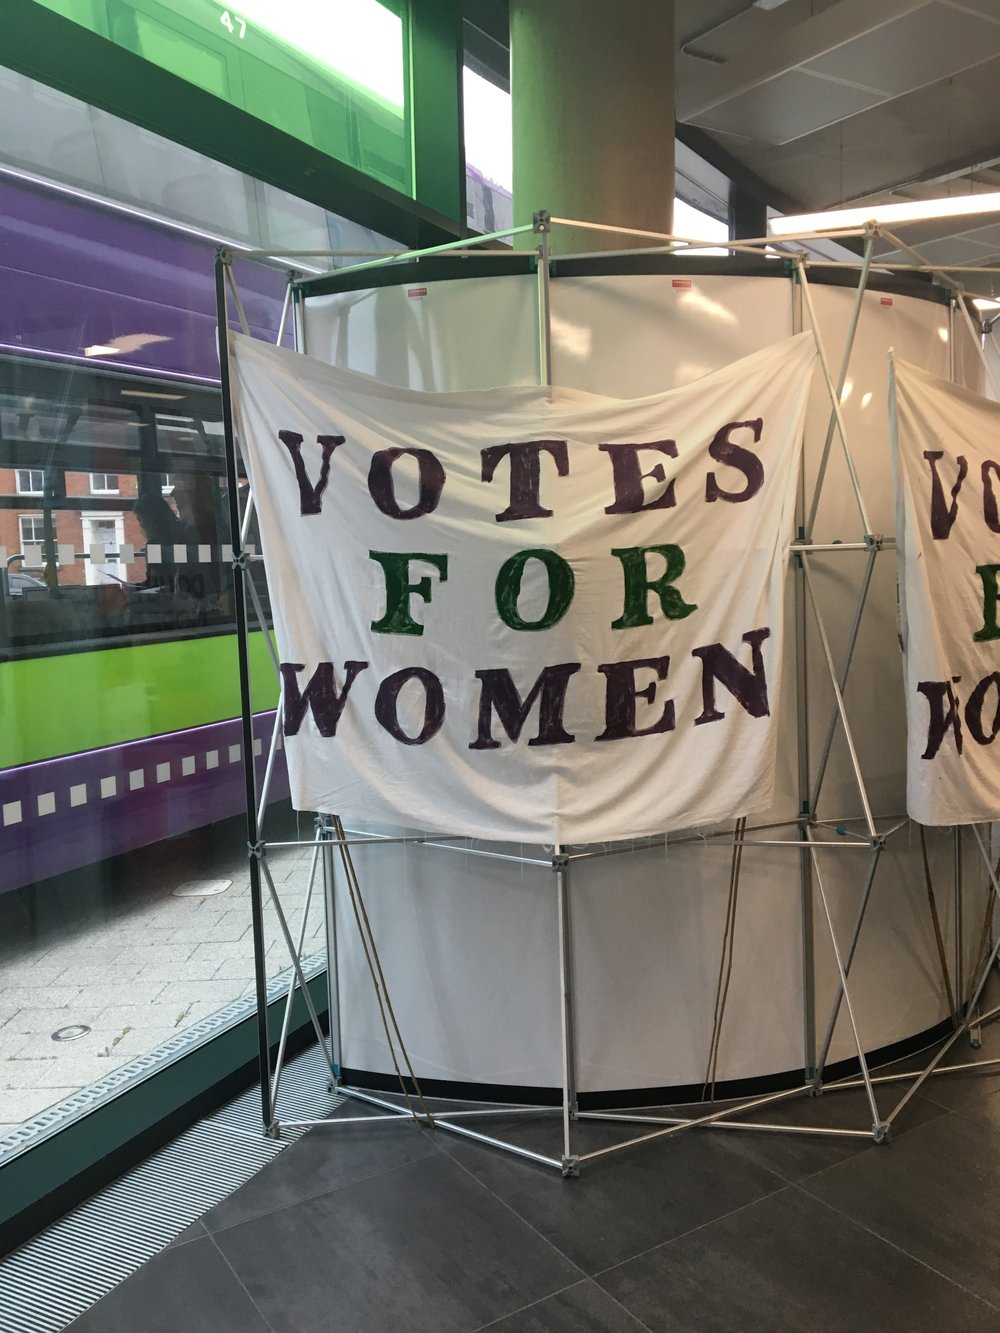 Votes for Women banner at the Women's Festival, Ipswich, UK 6th October 2018